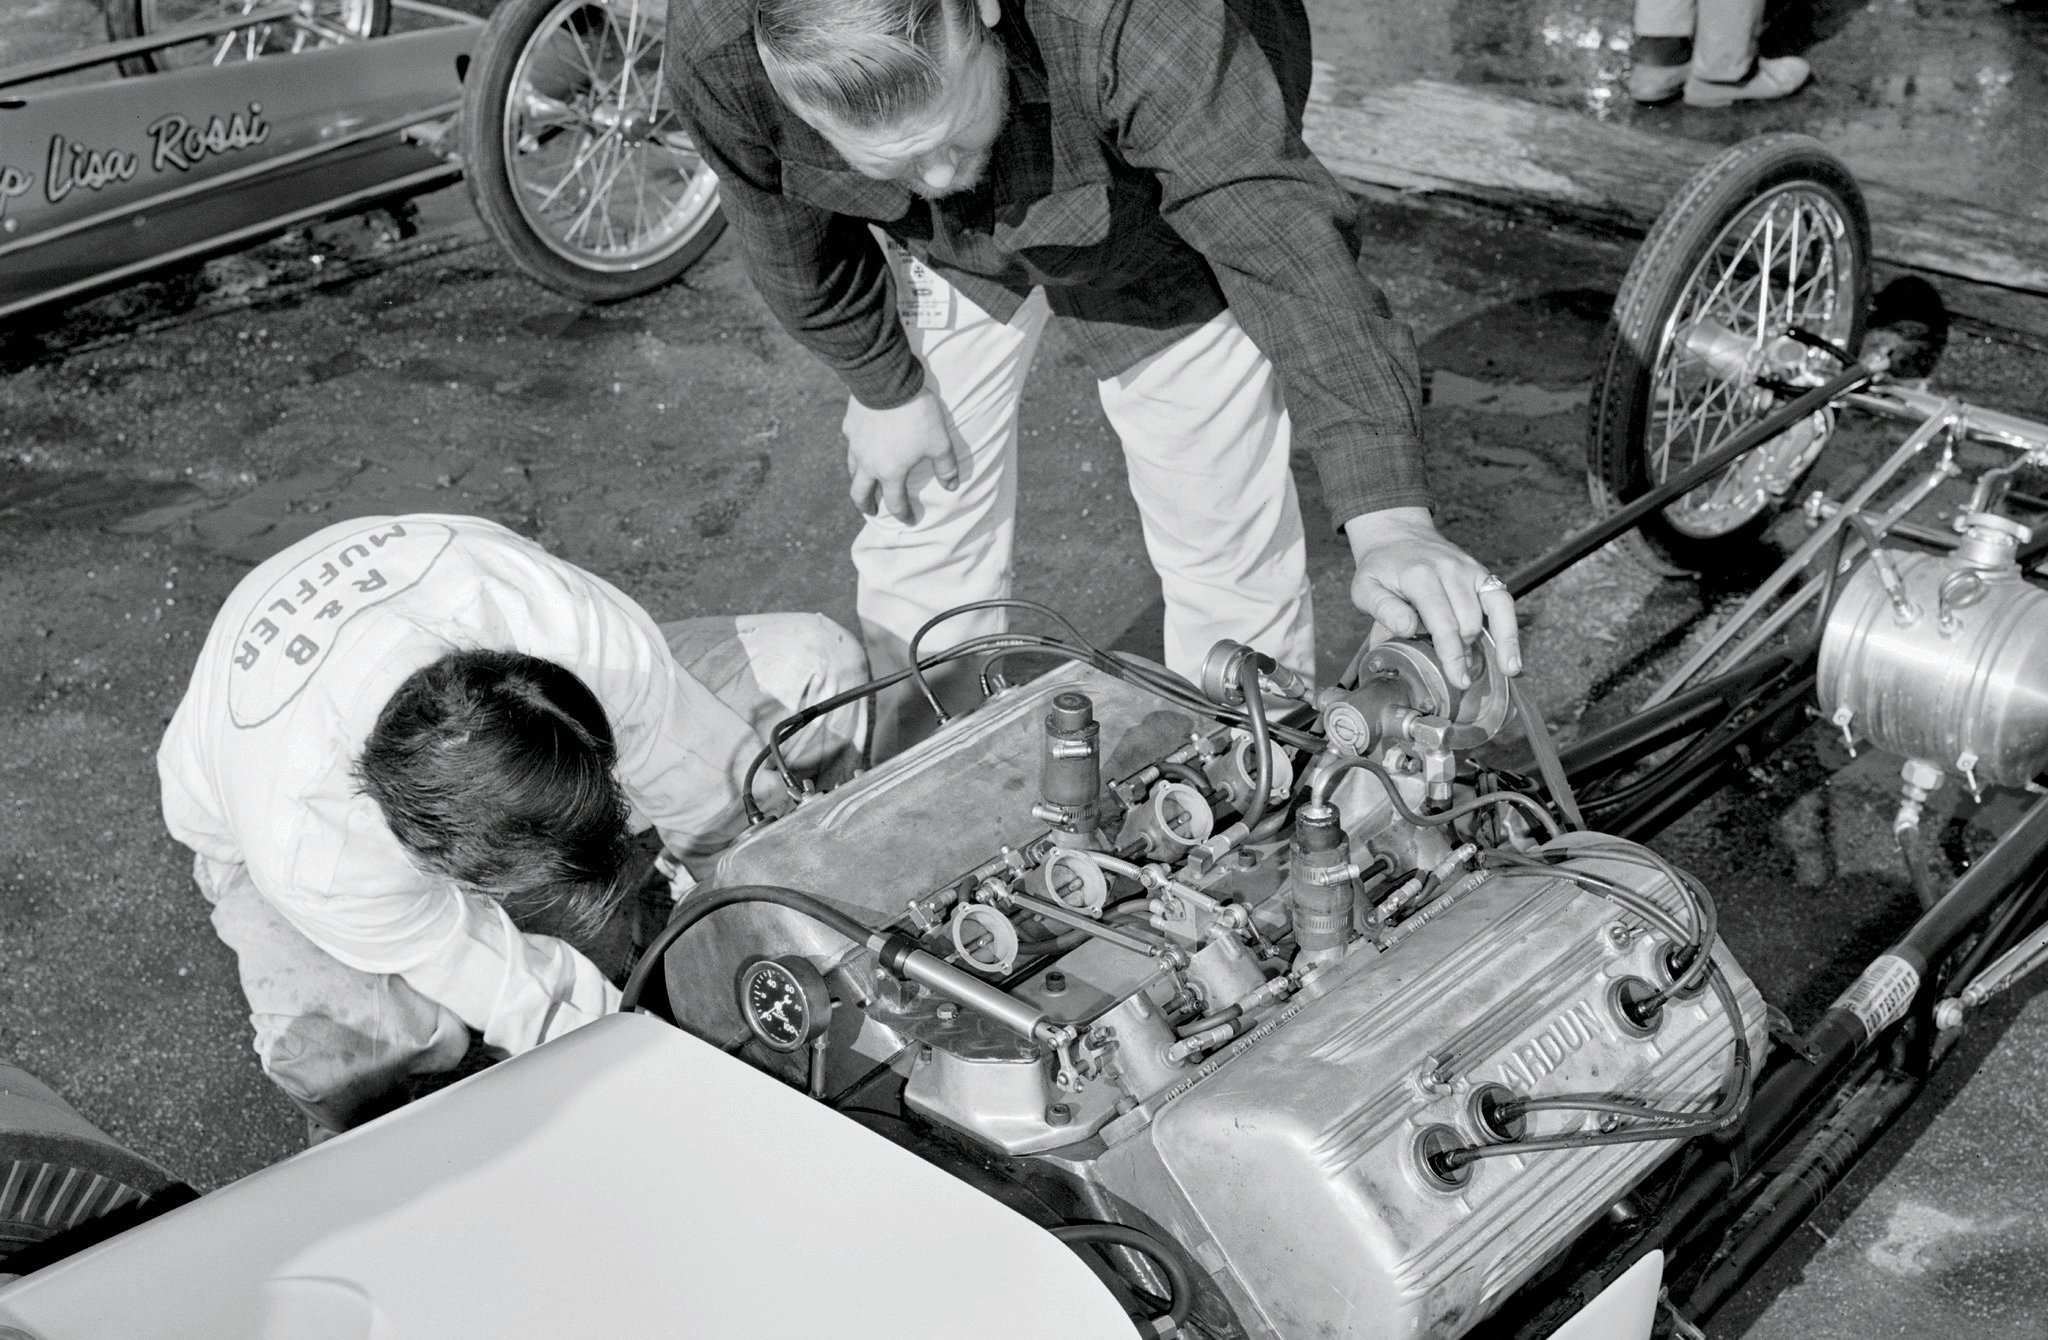 """Motor Trend's film archive surprised us with not one, but two examples of Arduns in open competition at Pomona. What we cannot locate are published records of either the injected digger or blown Fiat coupe. The best guesses of our usual sources identify the owners as Joe Bagoshian and """"Dirty"""" Eddie Potter, respectively. (Help, readers?)"""